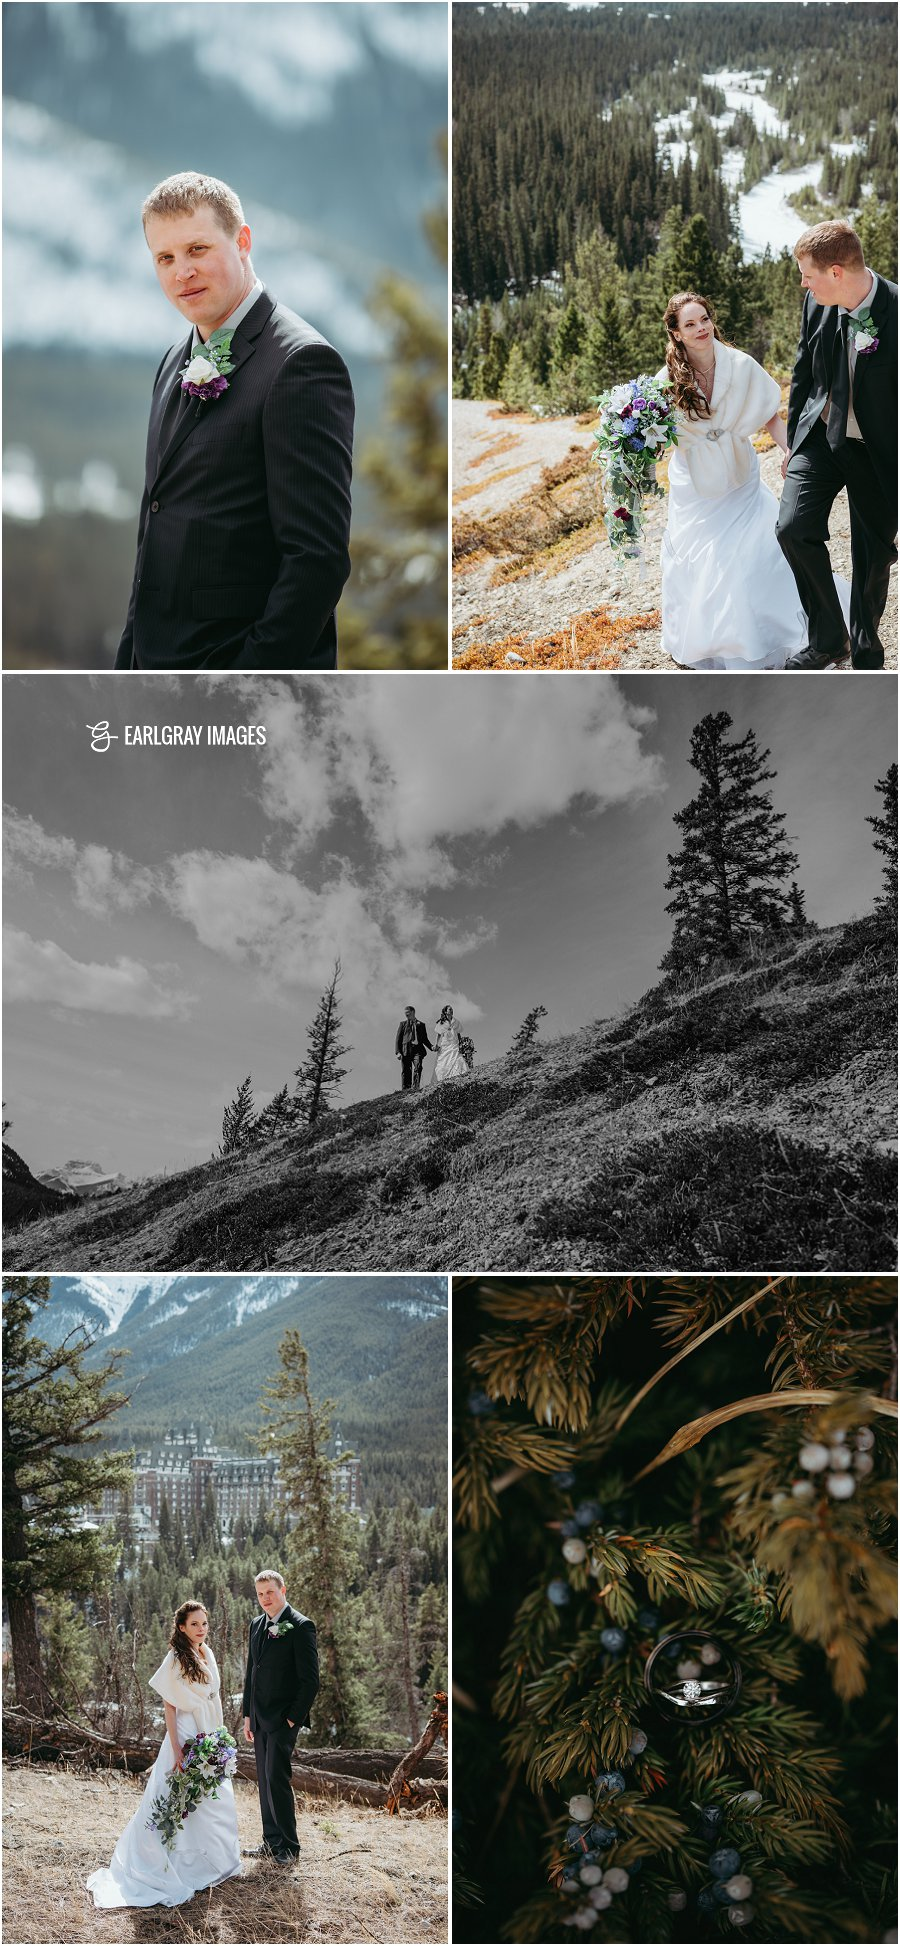 Banff winter wedding, Hoodoos viewpoint wedding, Canmore winter wedding, small Banff wedding, mountain wedding